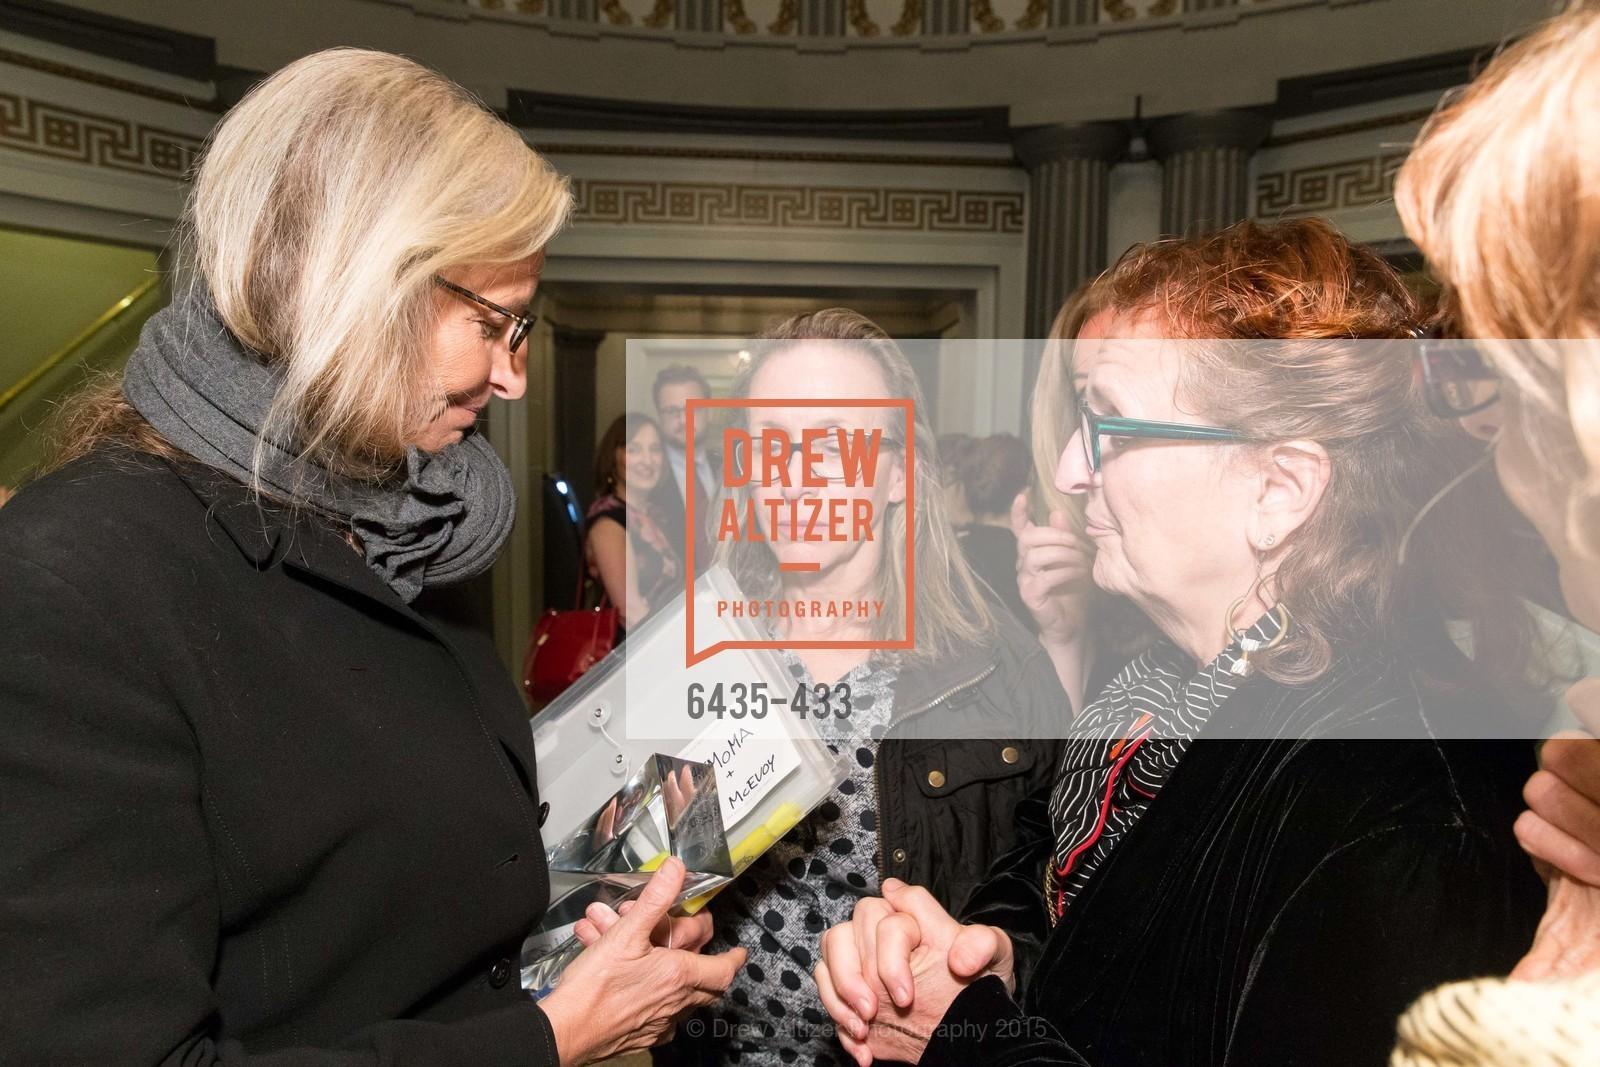 Annie Leibovitz, Paula Leibovitz Goodwin, Susan Leibovitz Steinman, SFMOMA Contemporary Vision Award, Regency Ballroom. 1300 Van Ness, November 3rd, 2015,Drew Altizer, Drew Altizer Photography, full-service agency, private events, San Francisco photographer, photographer california